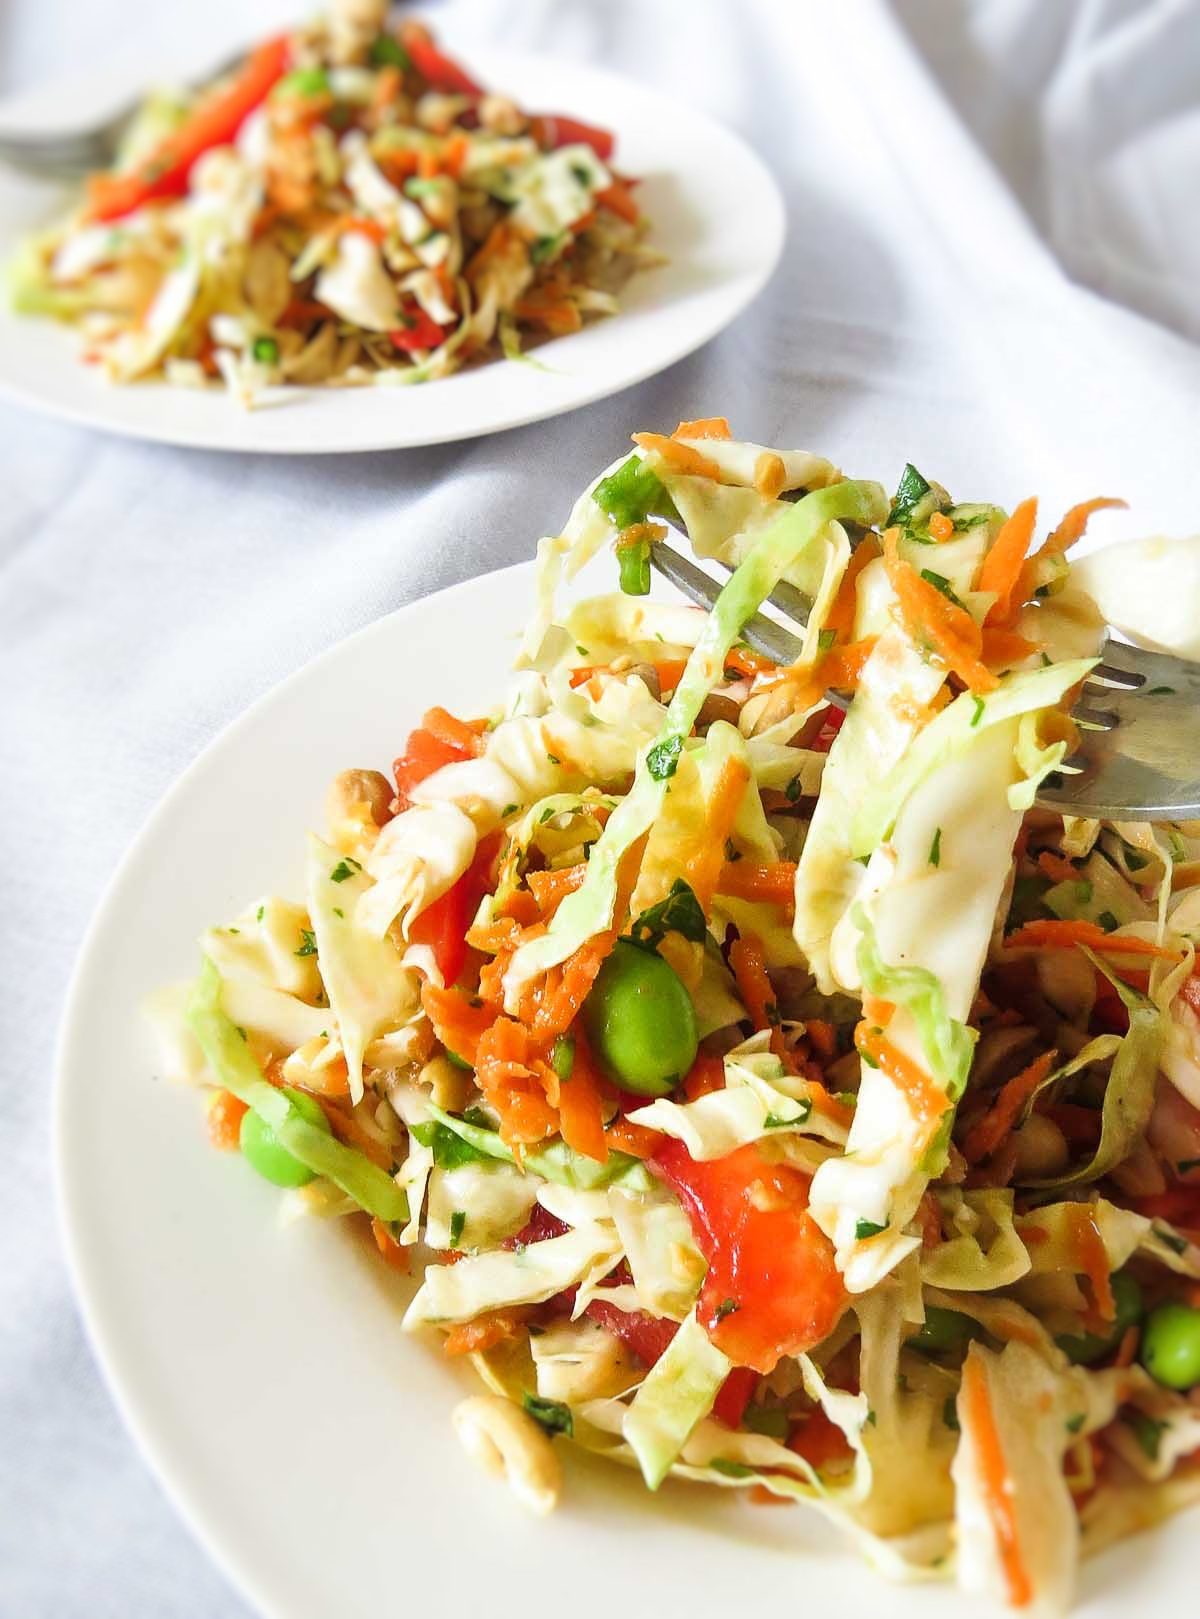 Ginger-Peanut Punch Asian Coleslaw - Yummy cabbage, carrots, red bell peppers, edamame, scallions, peanuts and cilantro get tossed together with a gingery-peanut dressing! What more can you want from this rainbow salad recipe?!